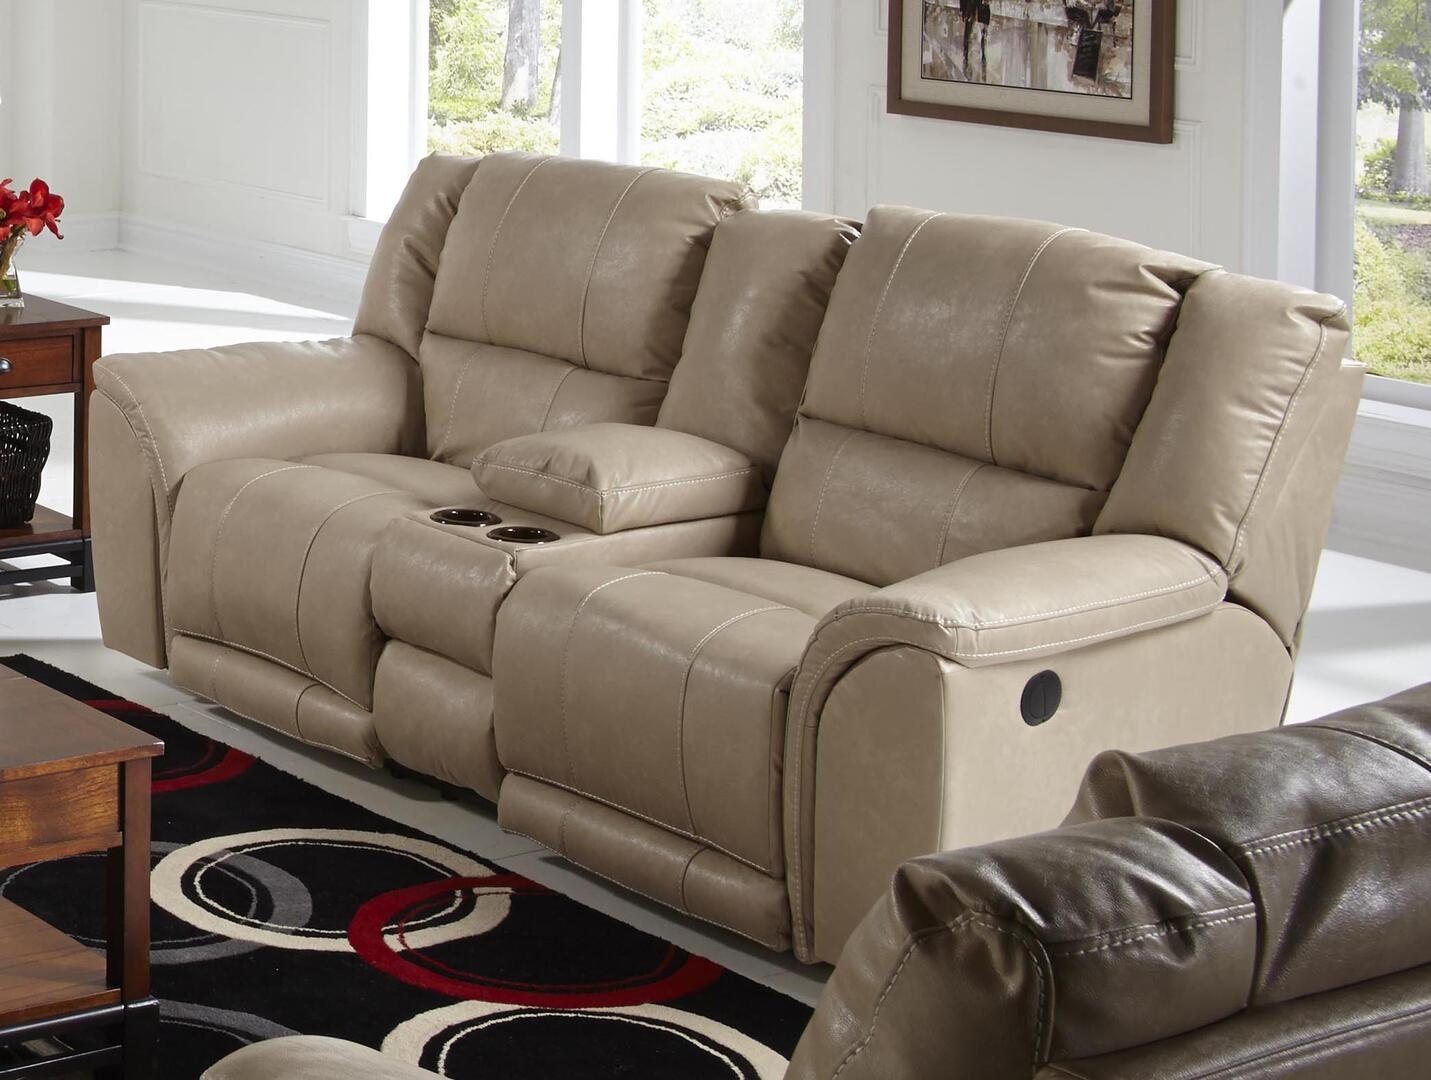 console lay loveseat dusk yhst flat cupholders catnapper carrington reclining w storage